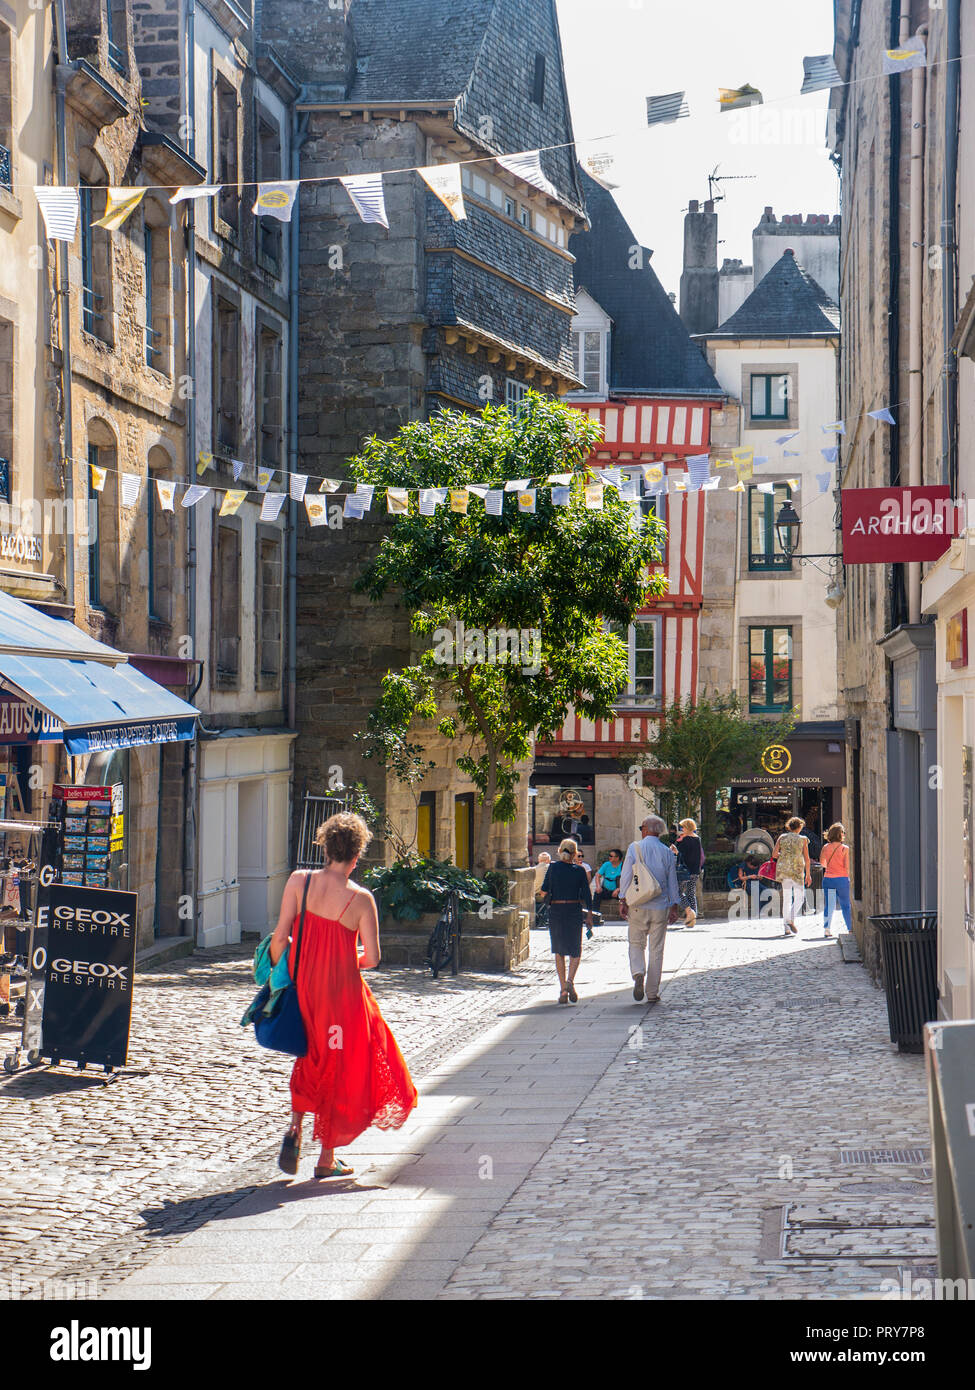 Quimper old town historic medieval pedestrian shopping centre with summer sun shoppers tourists & visitors Quimper Brittany Finistère France - Stock Image